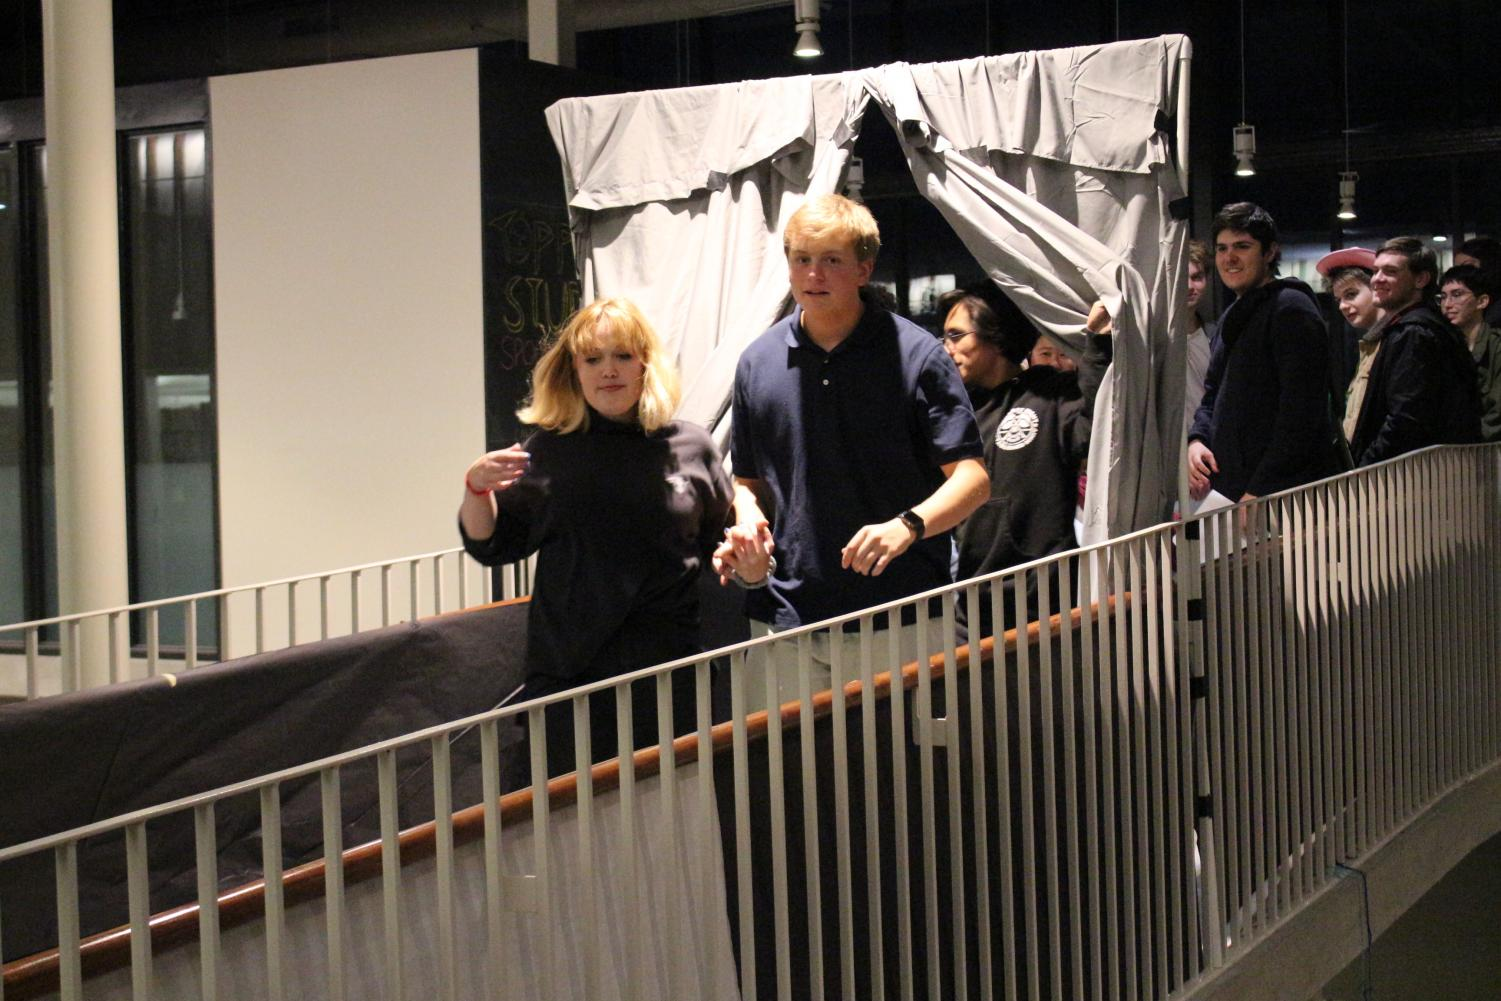 Visitors enter the haunted house located on the second floor of the Munday Library.